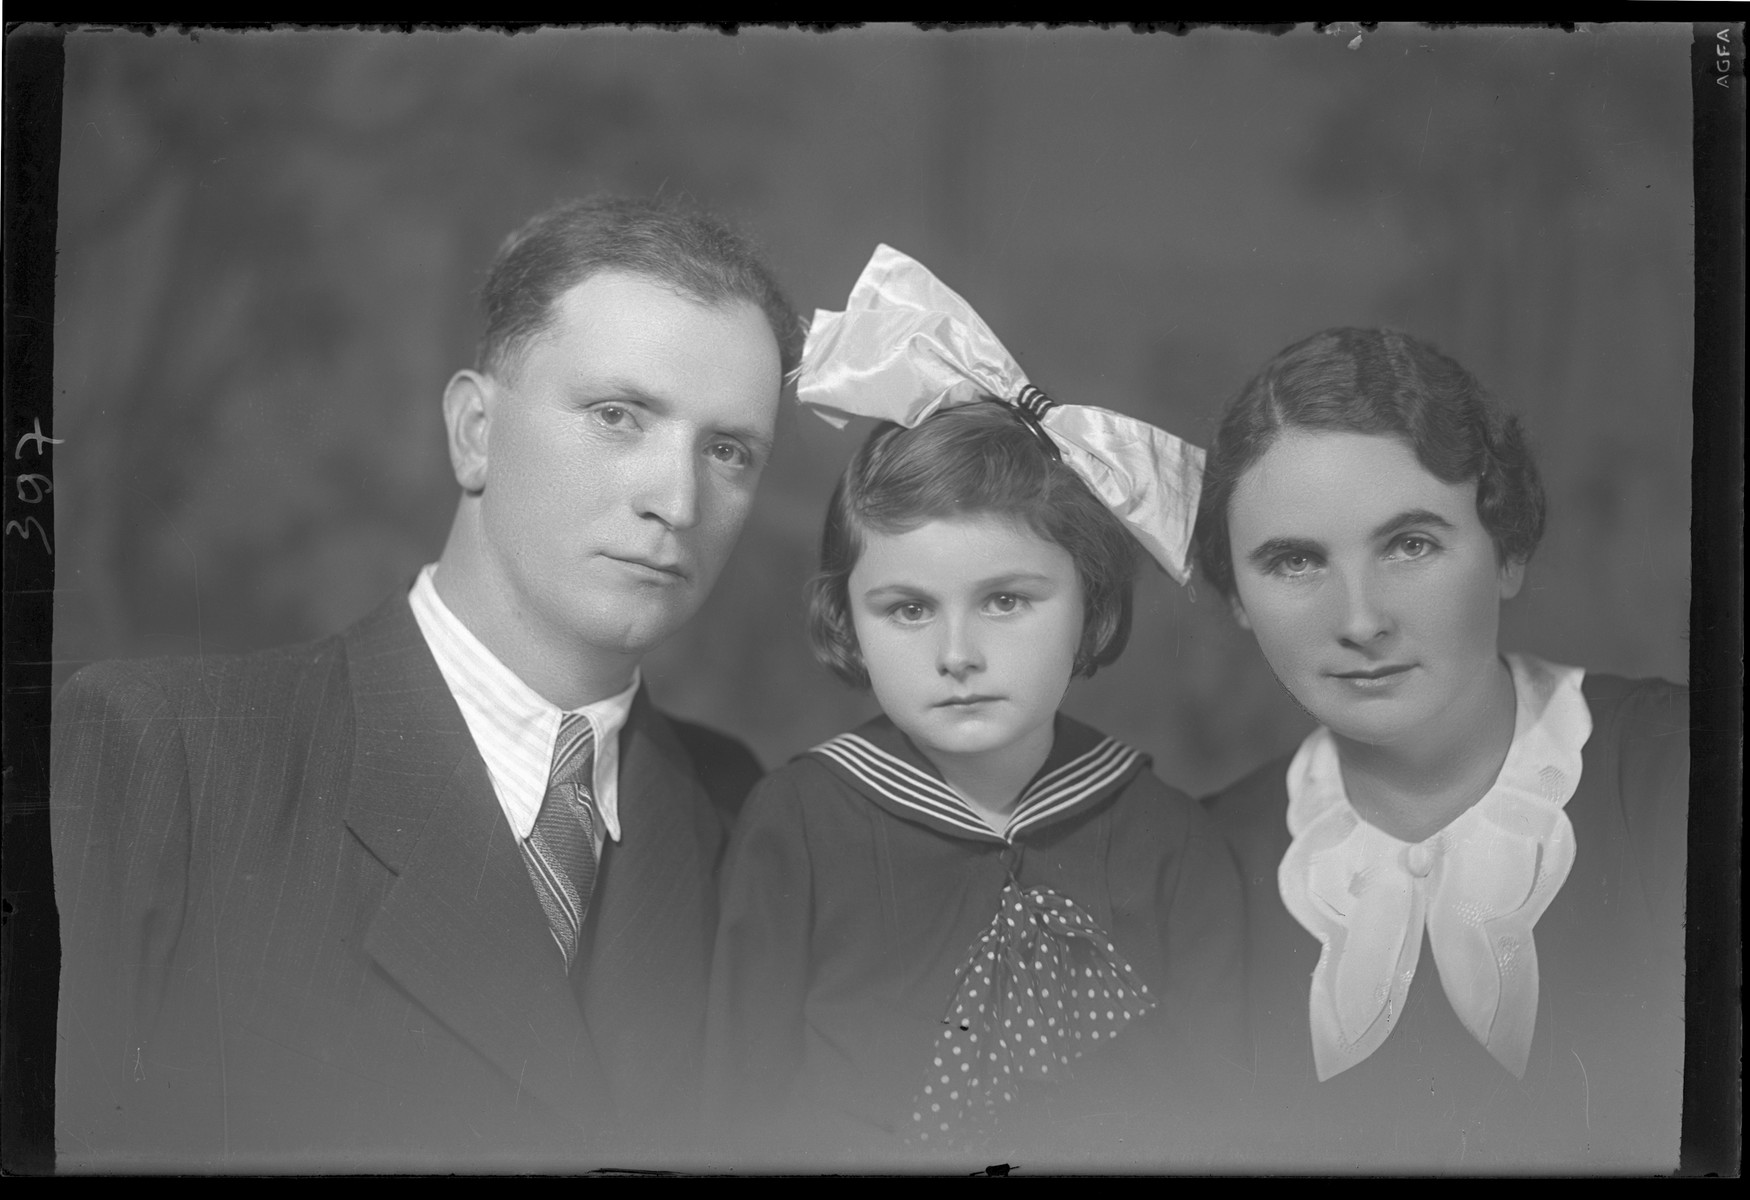 Studio portrait of Csaled Berkovits and his family.